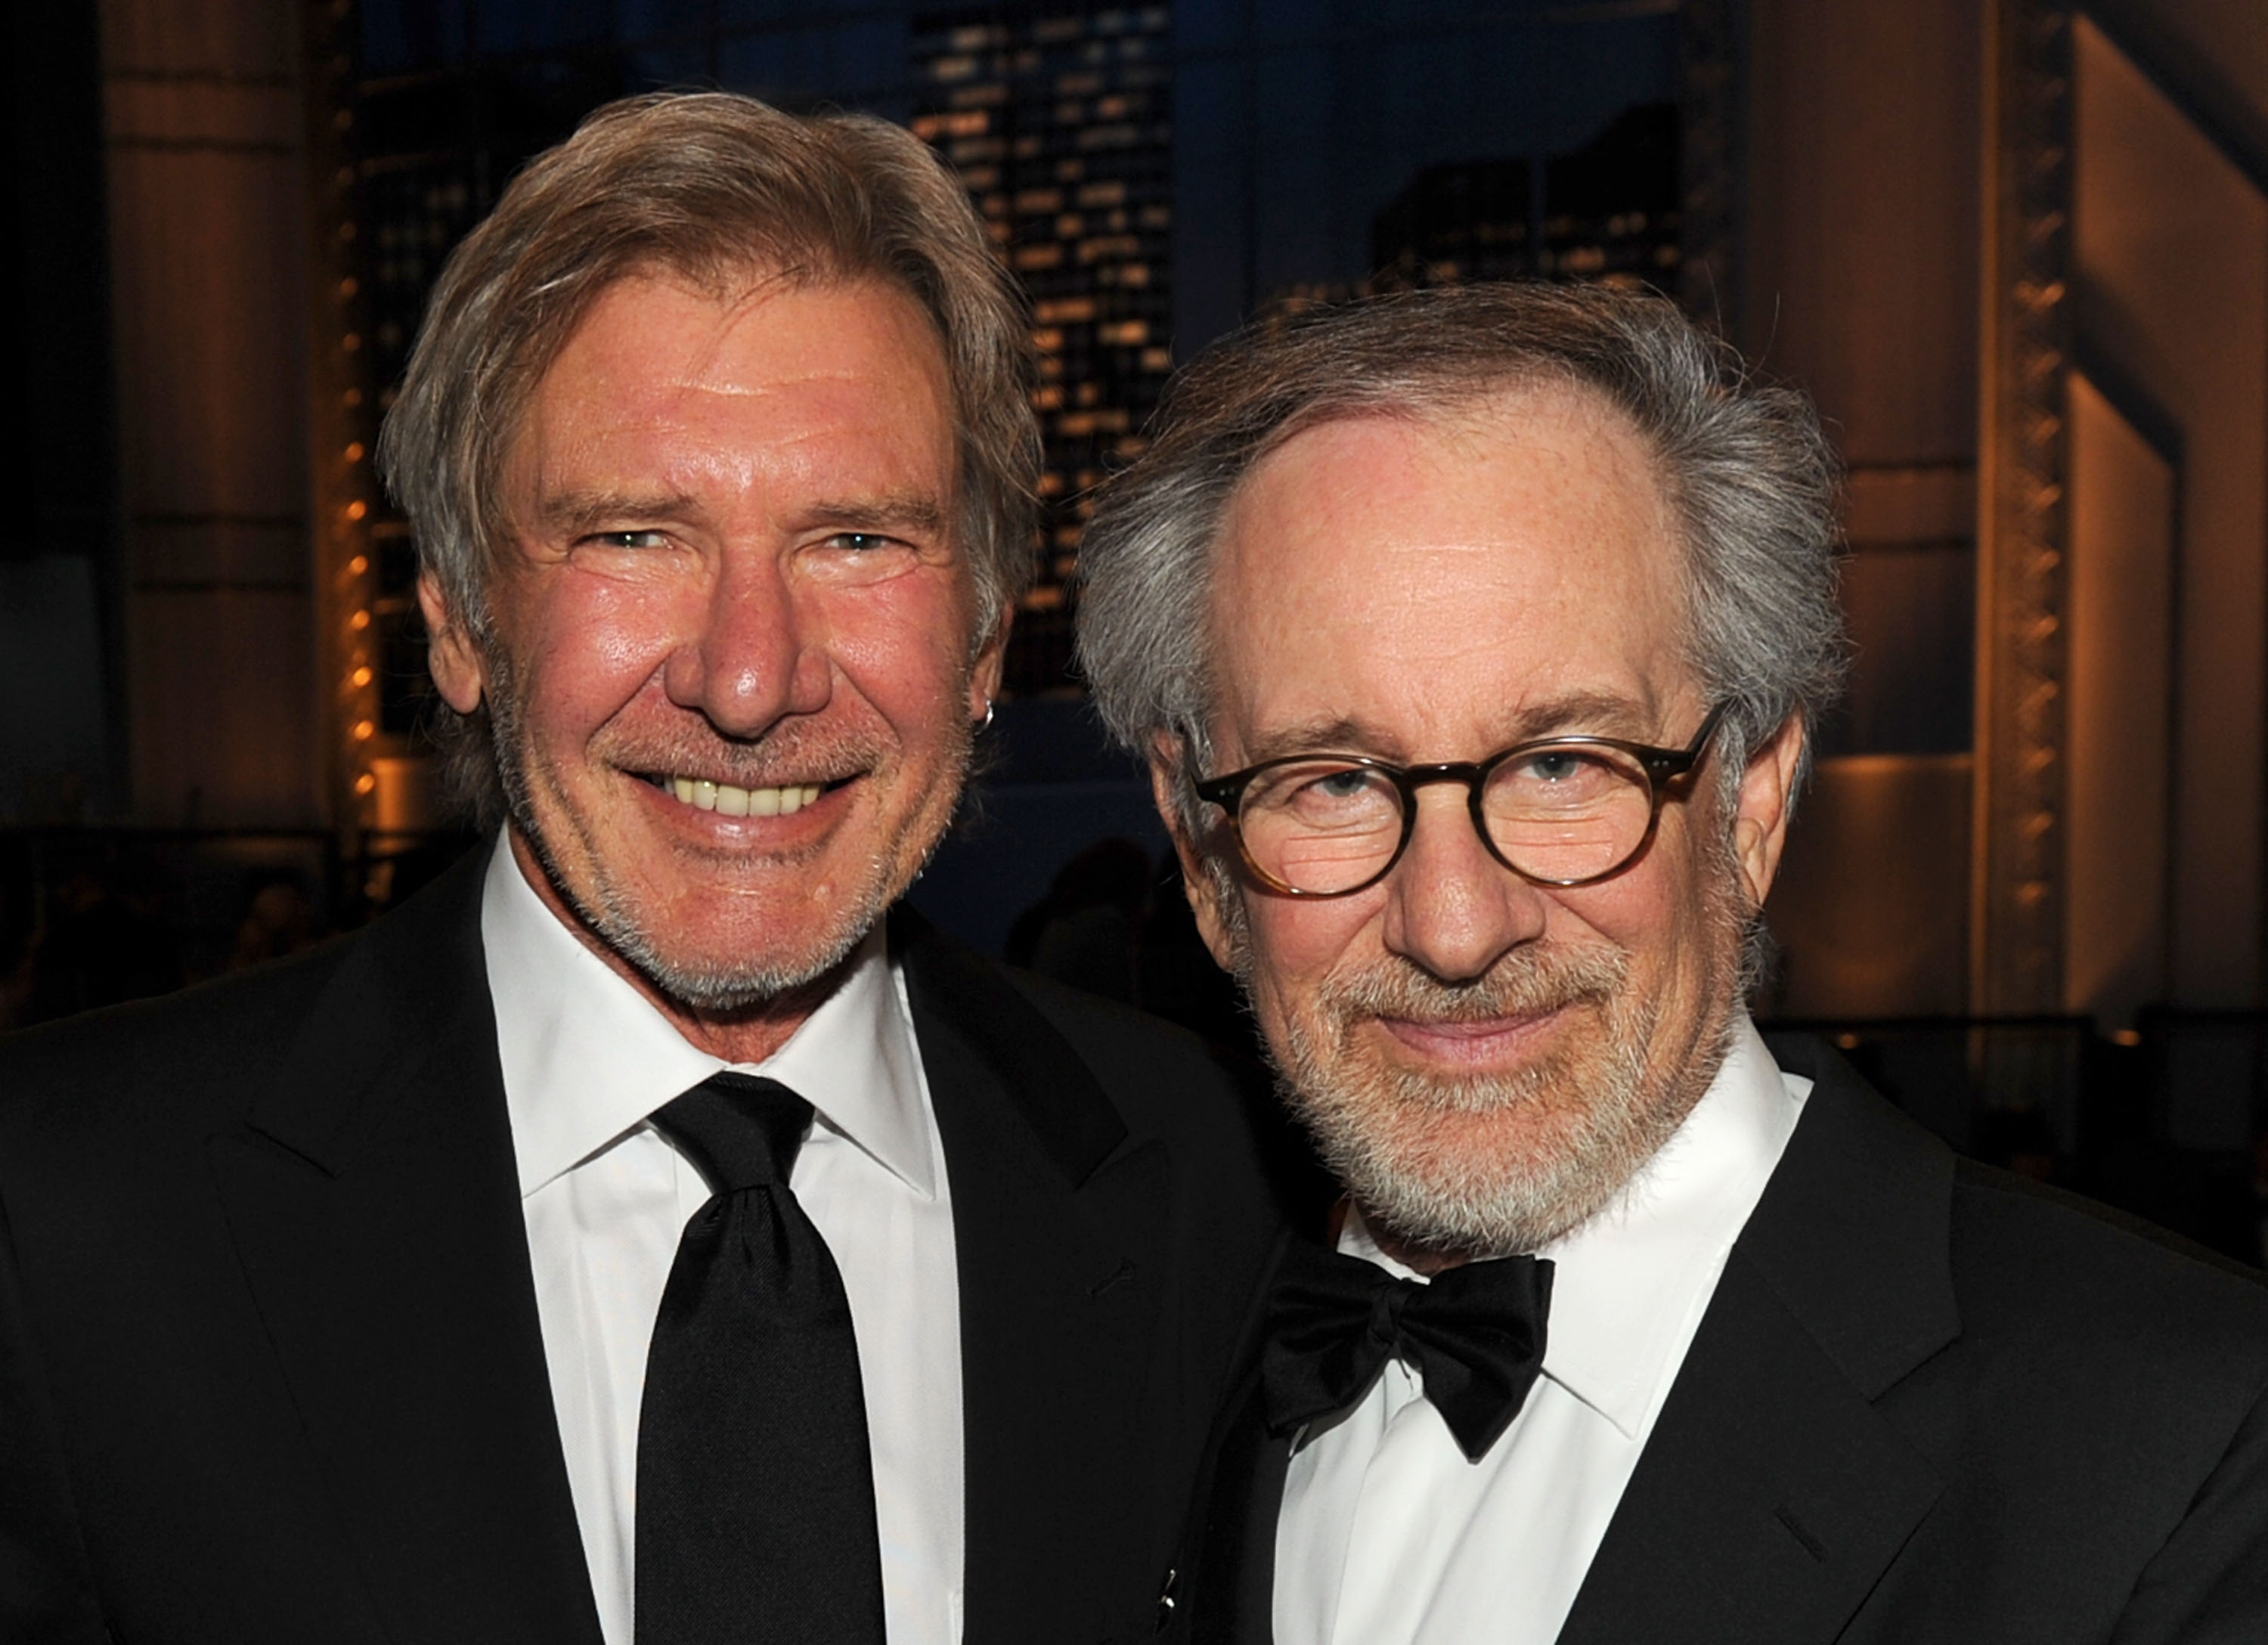 Harrison Ford and Steven Spielberg. (Getty)